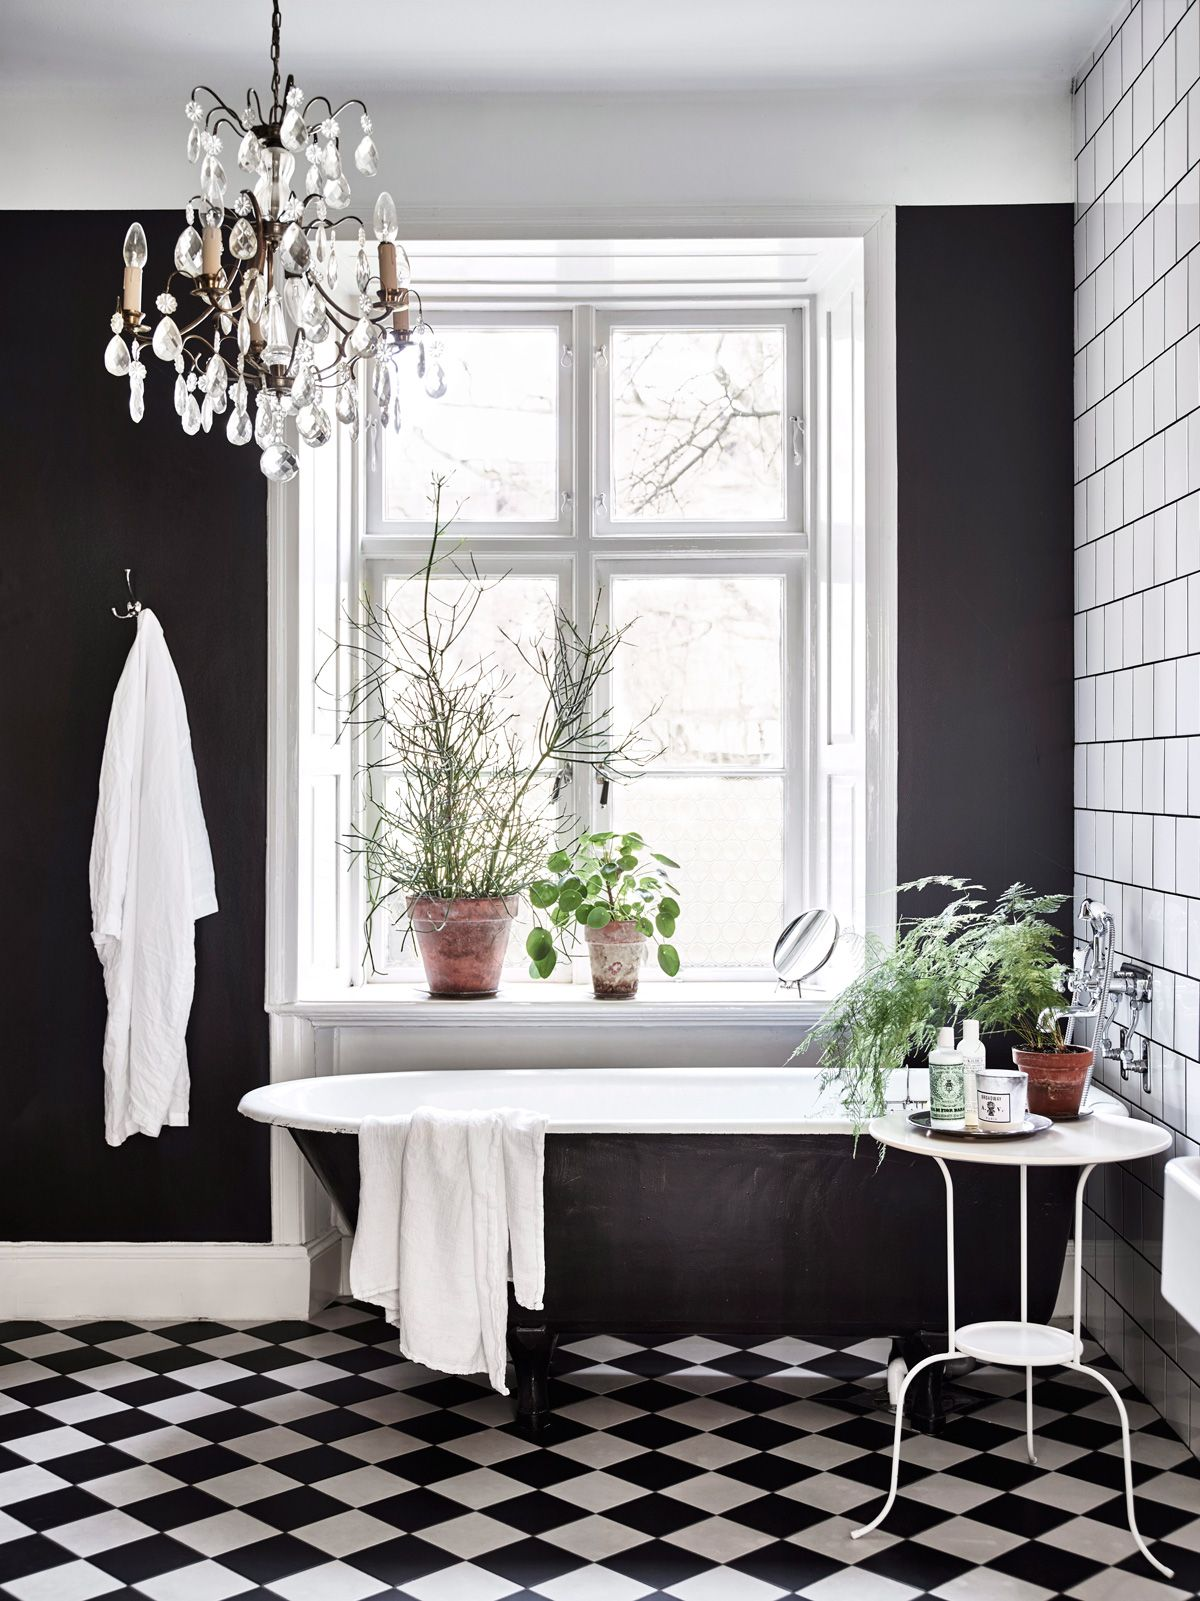 28 Ideas for Black Wall Interior Styling   Course   Pinterest ...